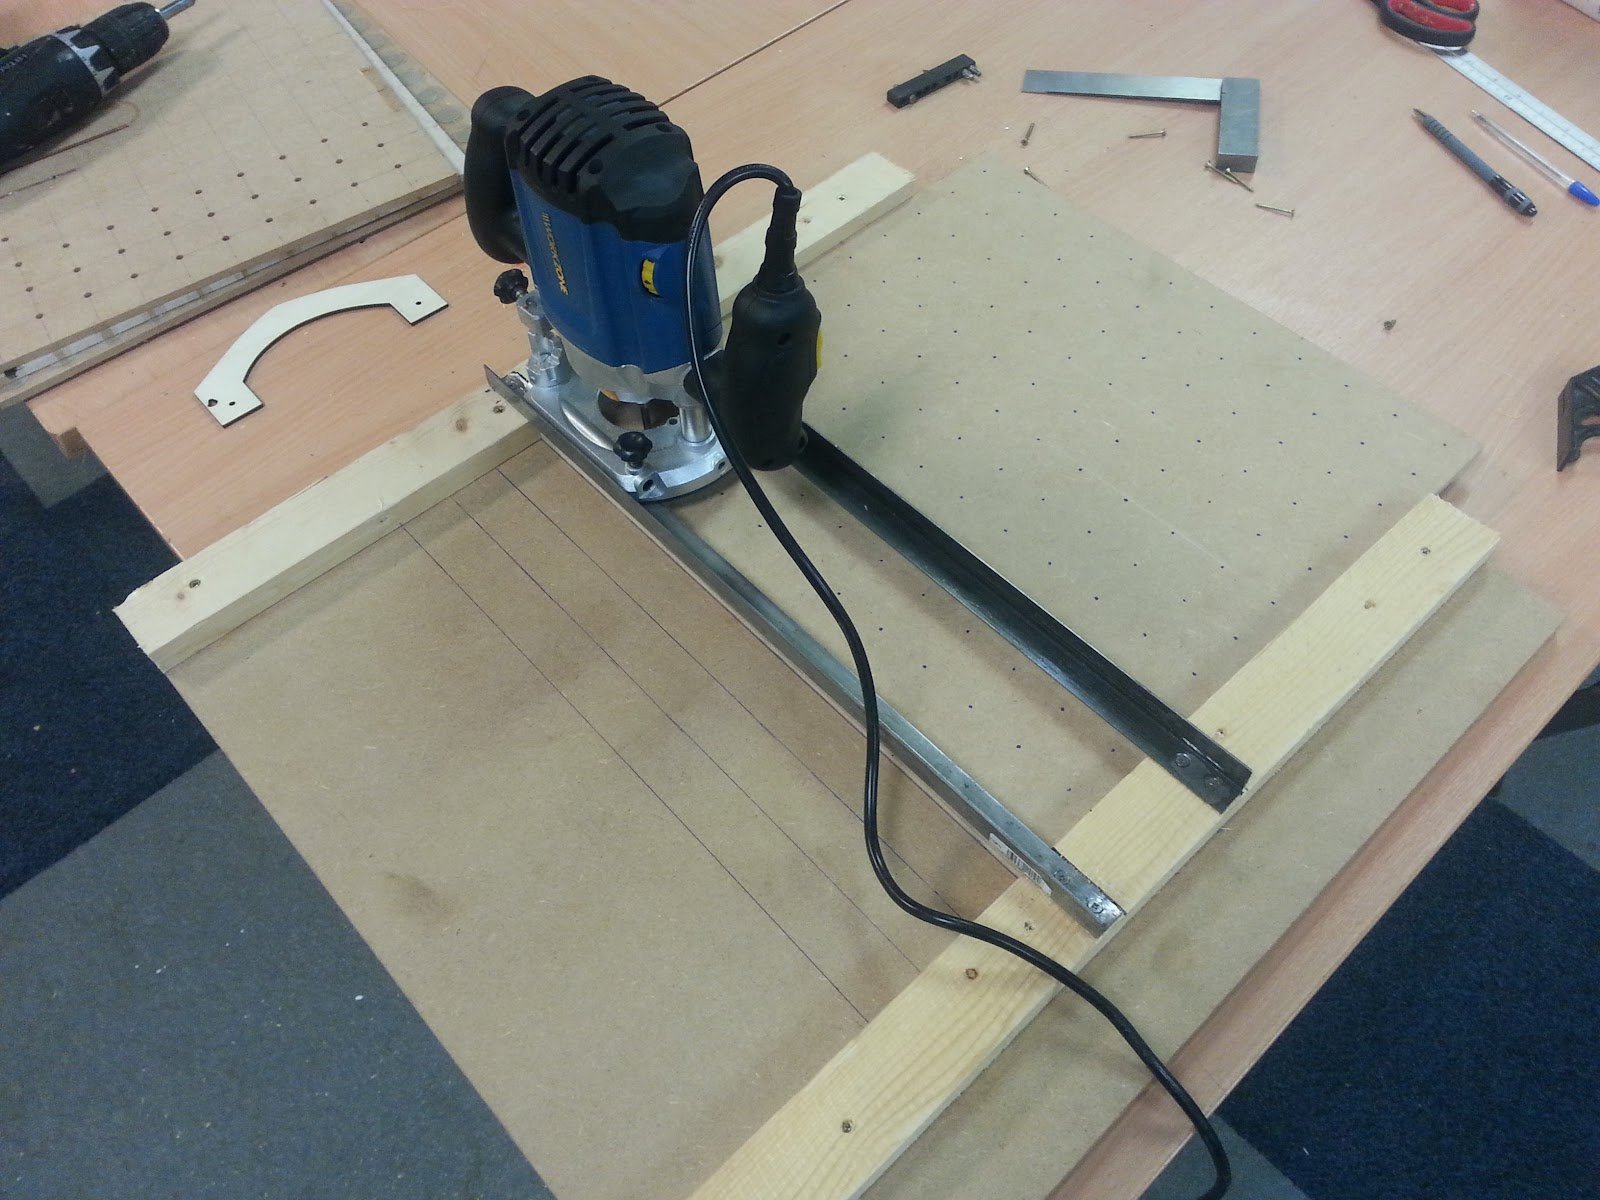 ... PDBs will fit perfectly into the grooves, was a real pain, so we've  come up with a simple router jig, out of offcuts of wood and scrap metal  runners.